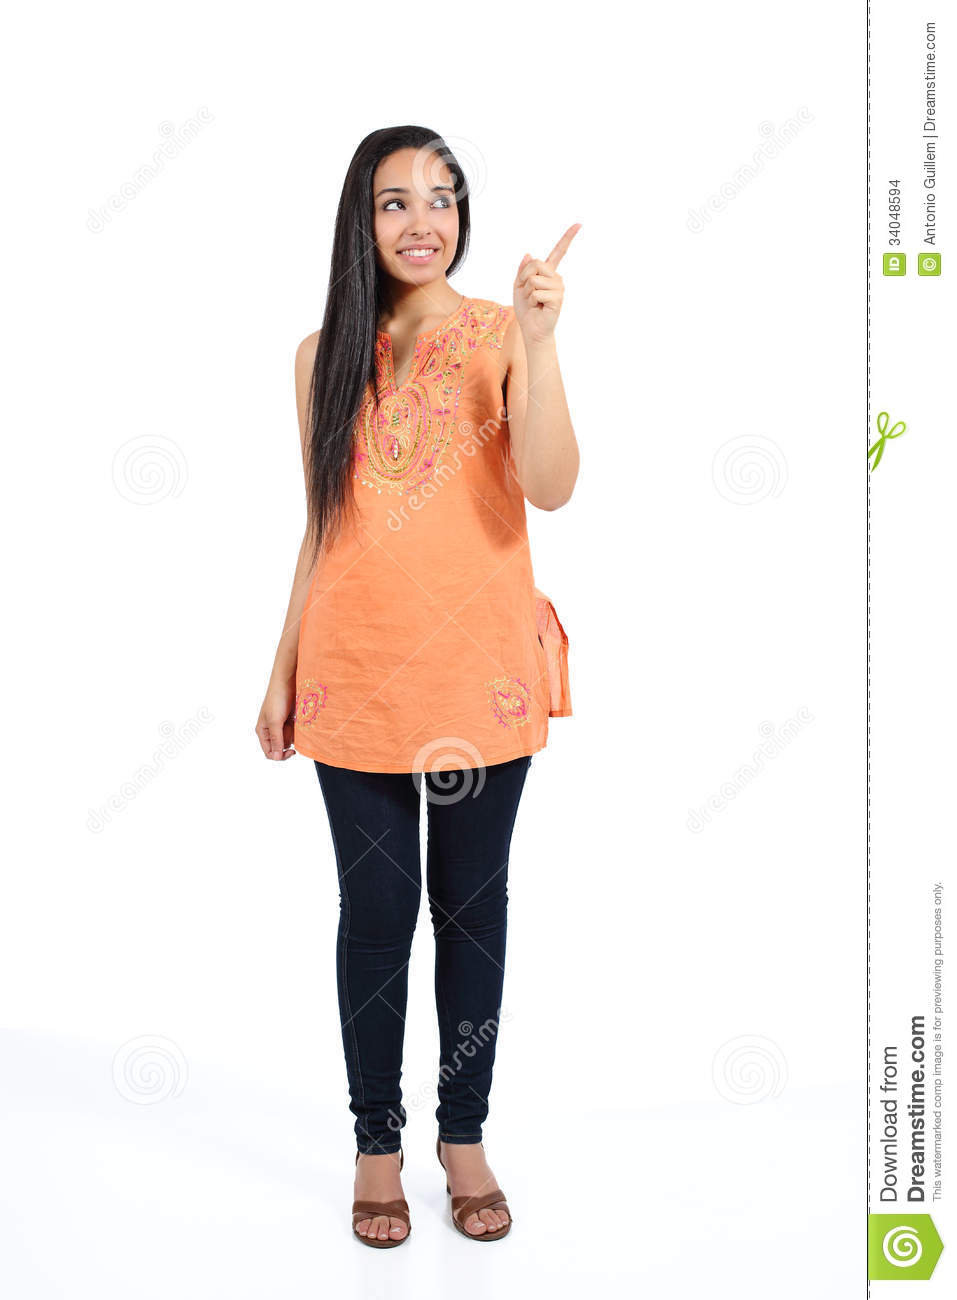 Beautiful arab casual woman pointing above presenting